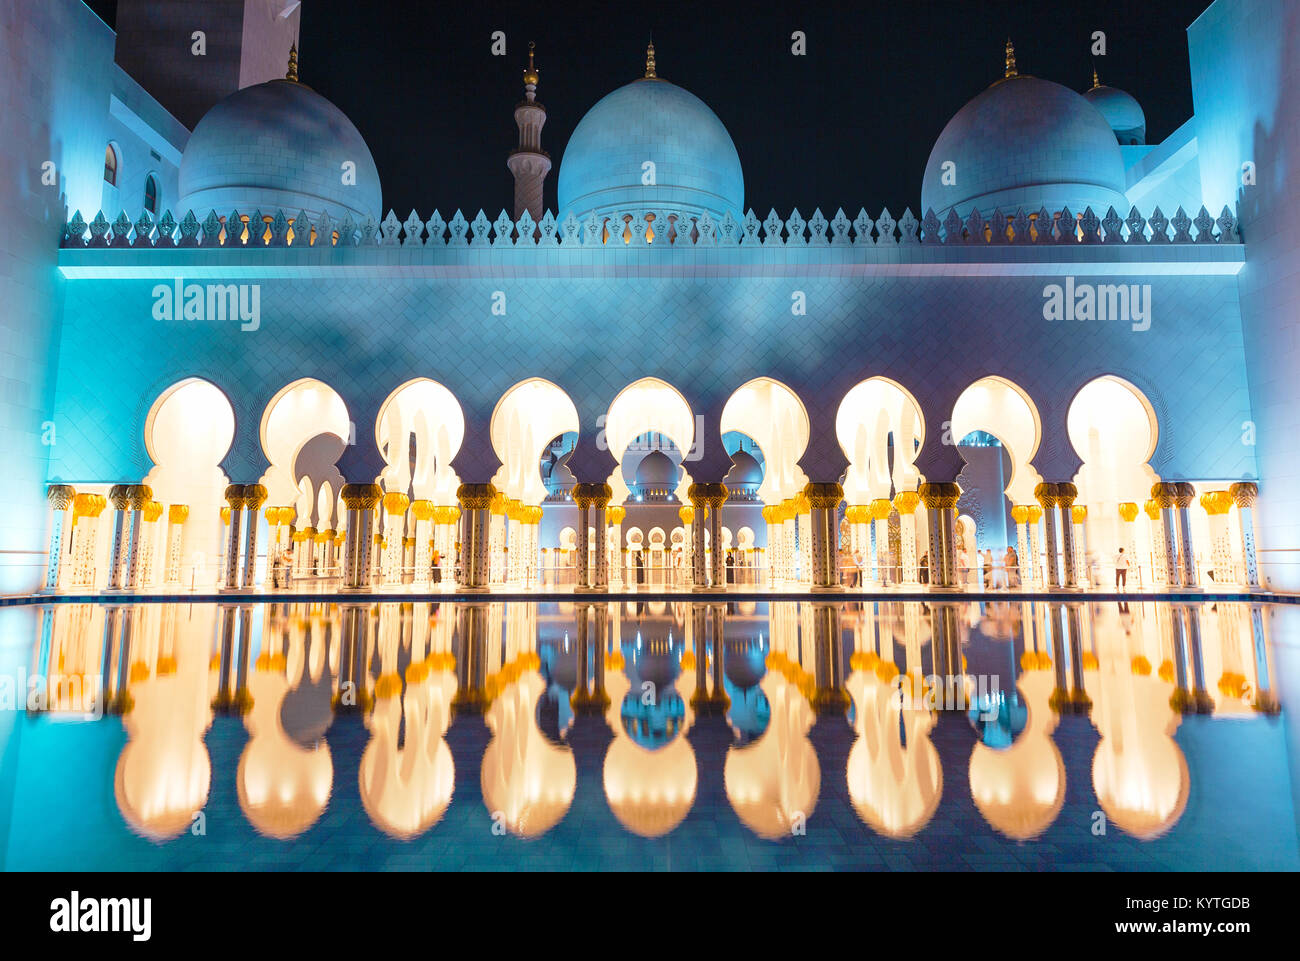 Abu Dhabi Sheik Zayed Grand mosque at night.  Arabian nights. imagination, dreamy wonder of the world. UAE, middle - Stock Image